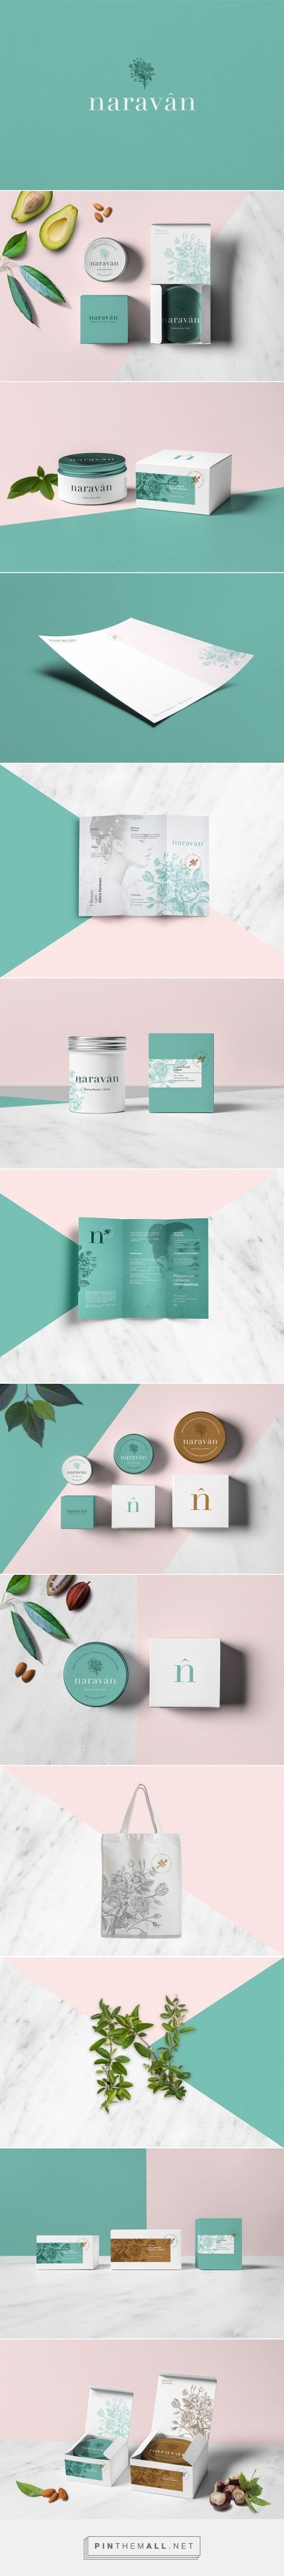 Naraván beauty packaging designed by Para todo hay FANS​ - http://www.packagingoftheworld.com/2015/08/naravan.html